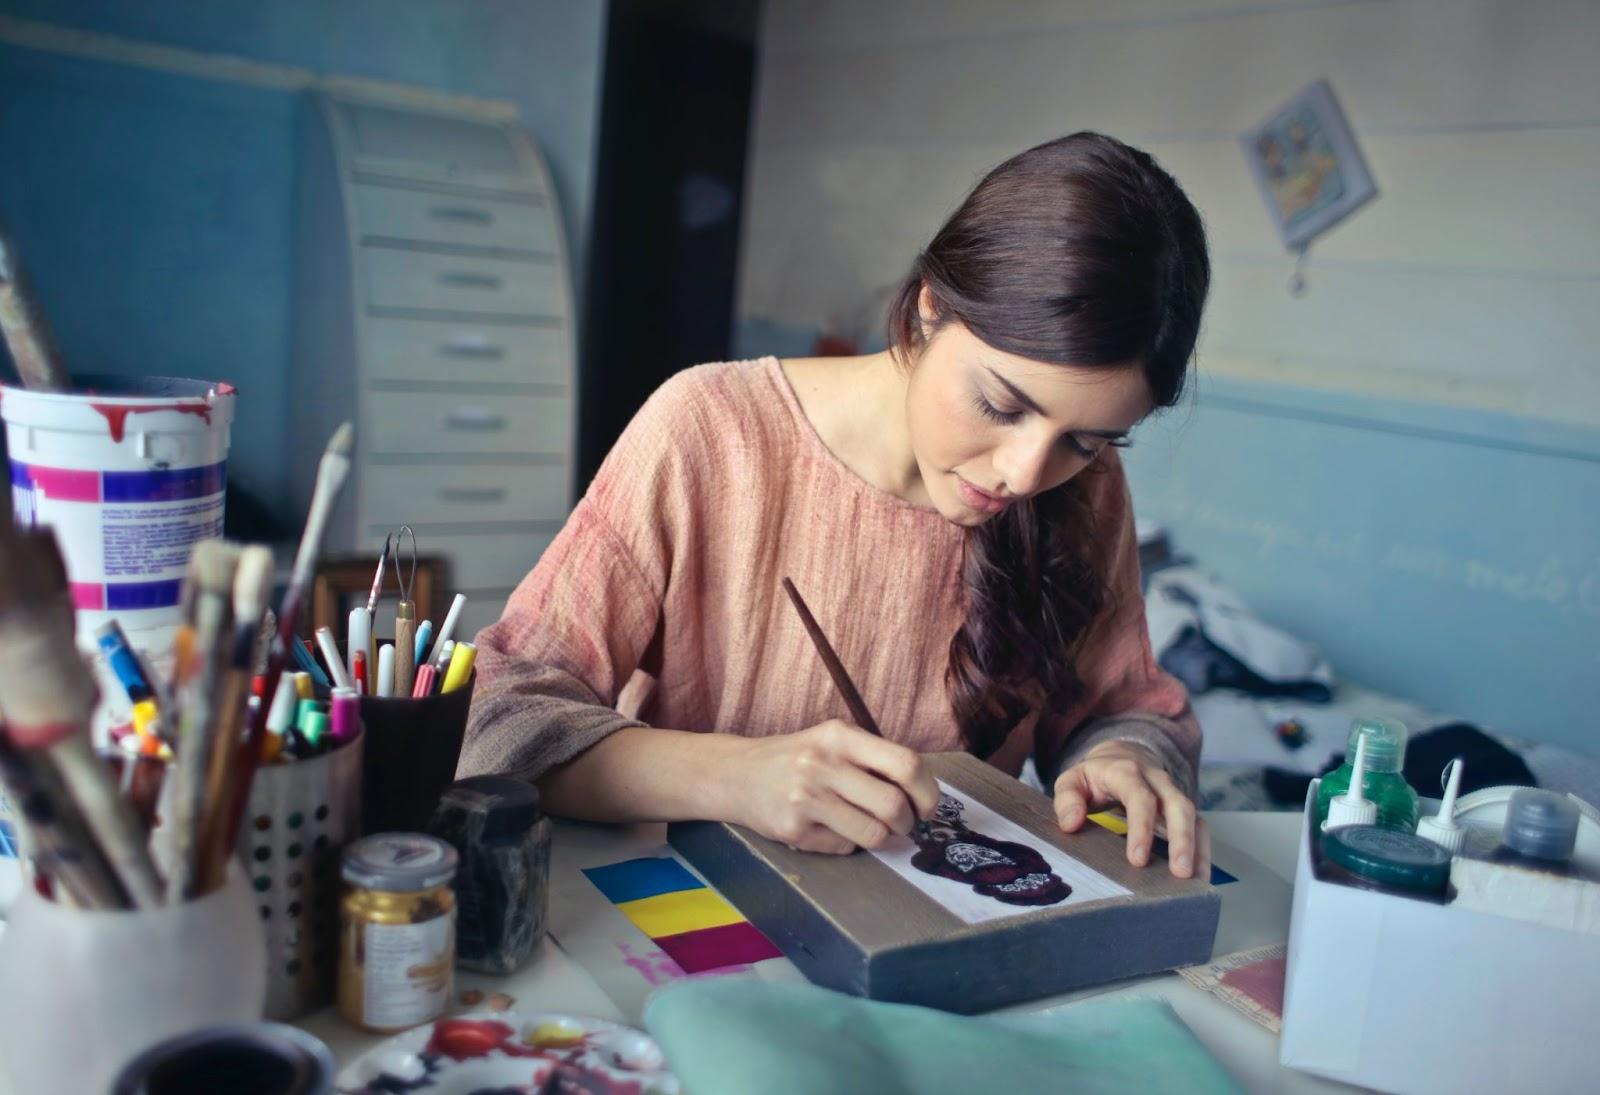 4 Great Career Options for Artists